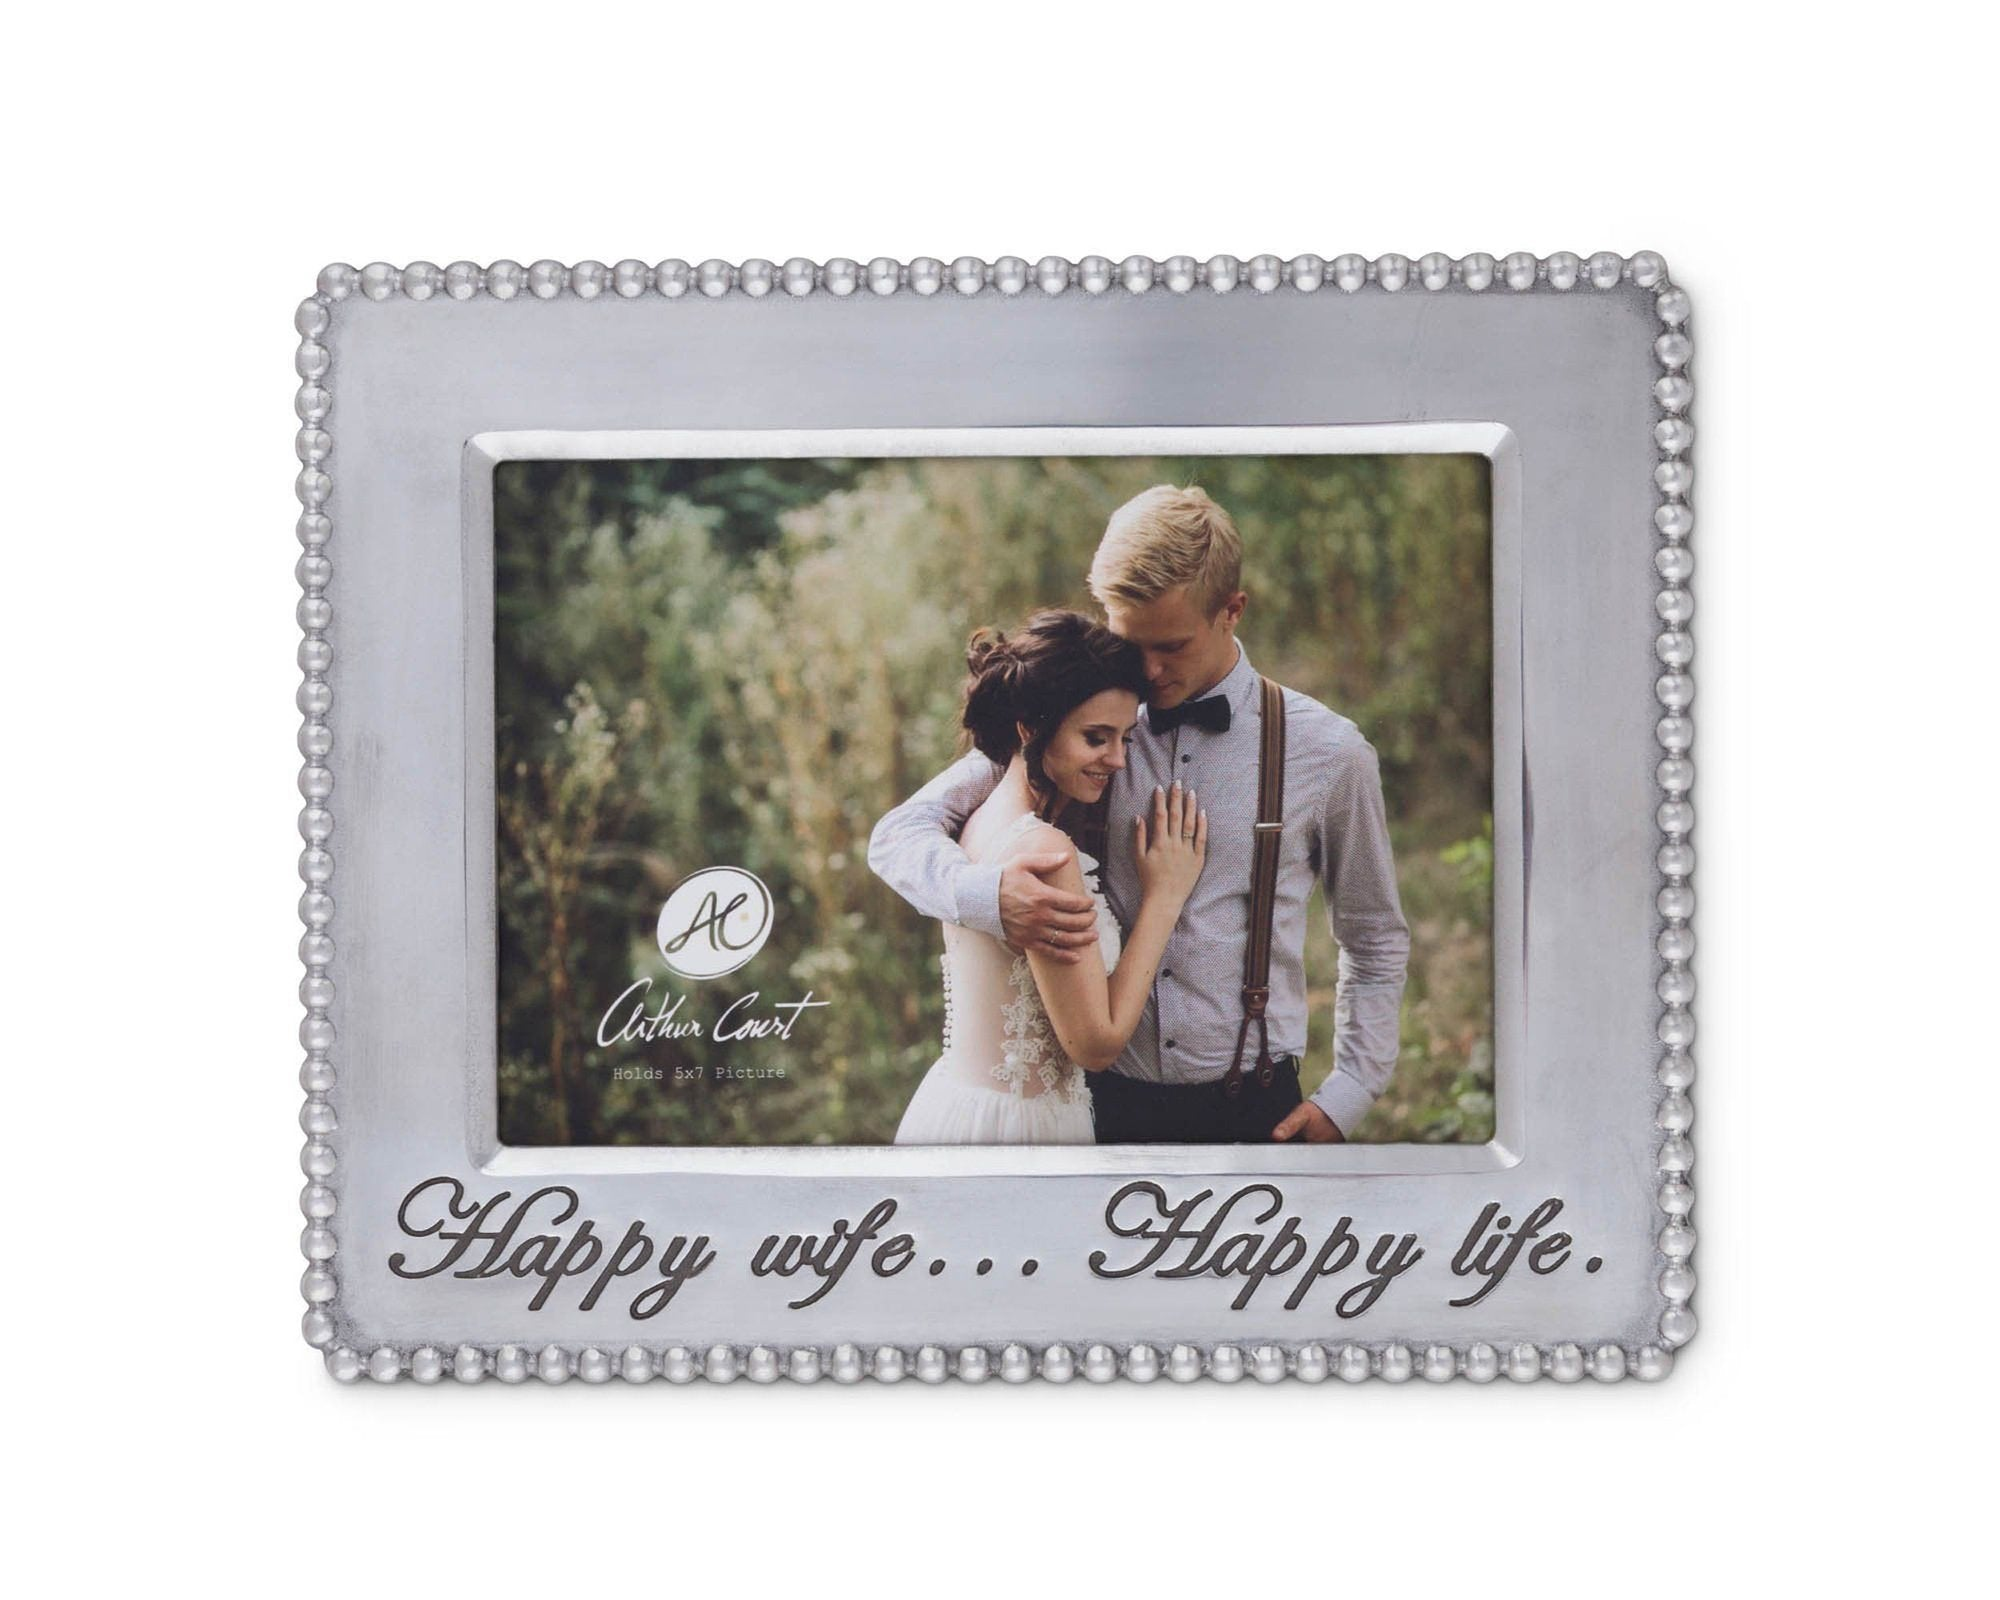 Happy Wife 5X7 Beaded Frame